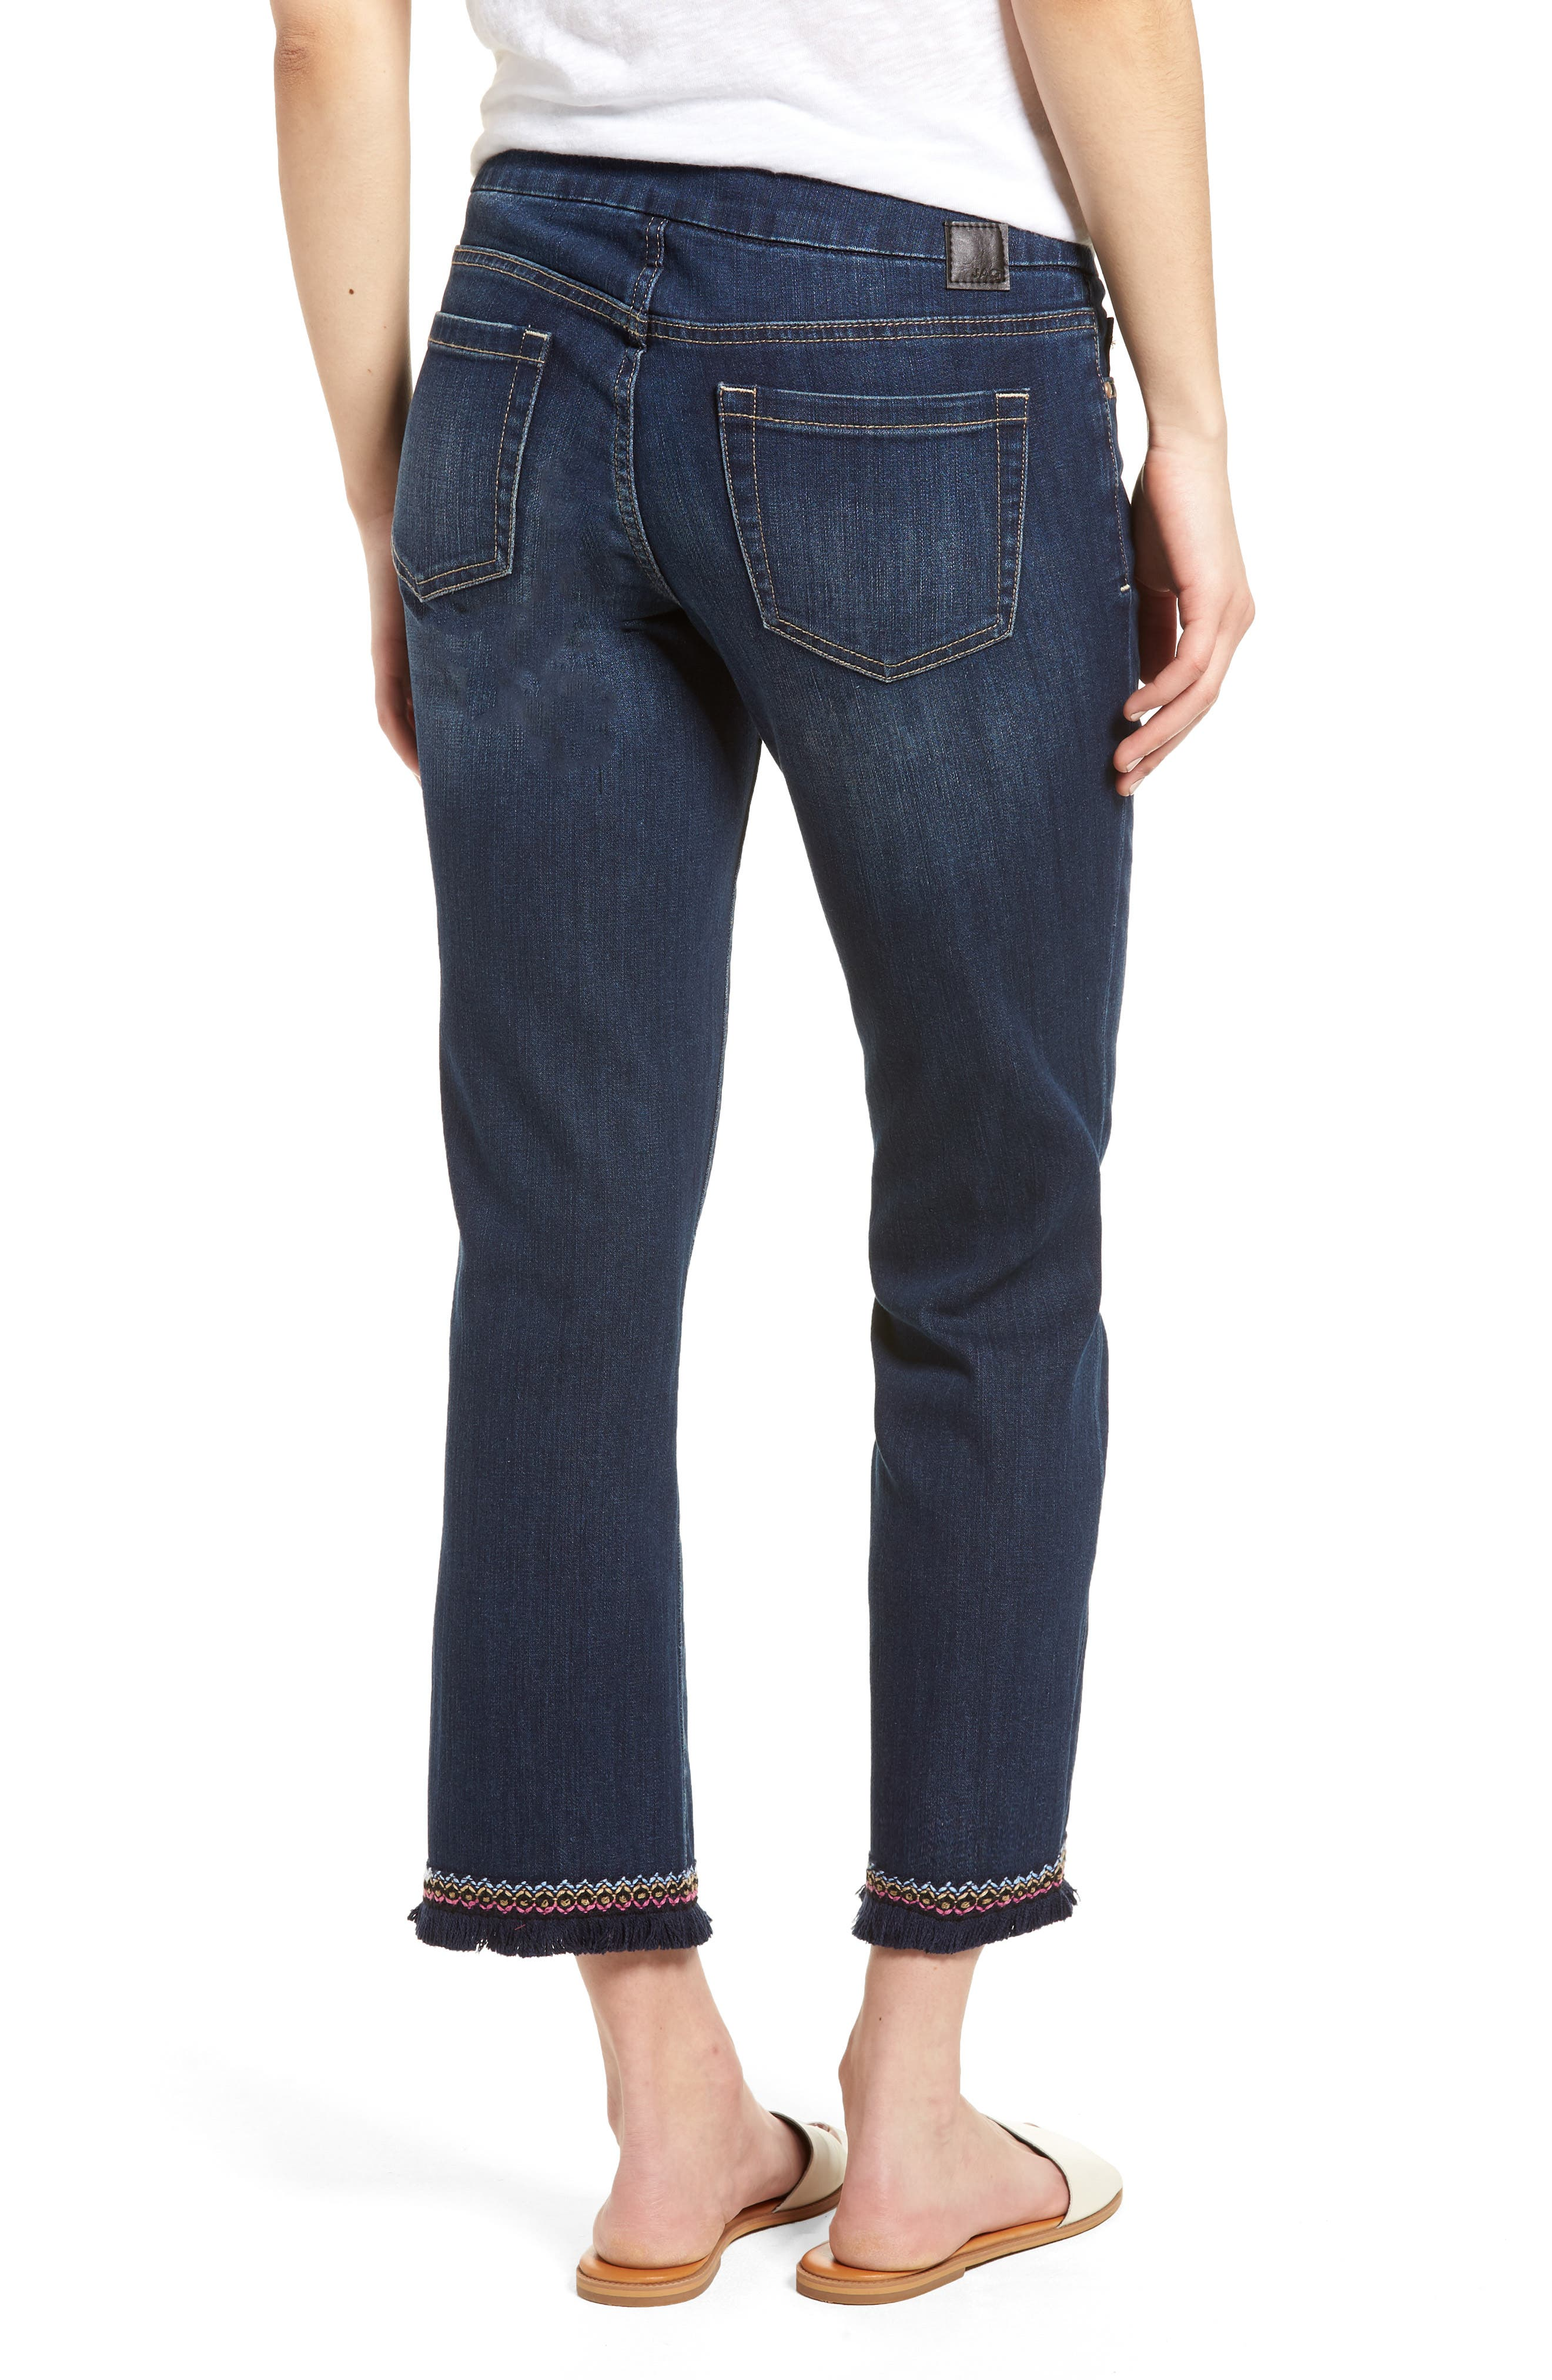 Peri Embroidery Fringe Jeans,                             Alternate thumbnail 2, color,                             Med Indigo